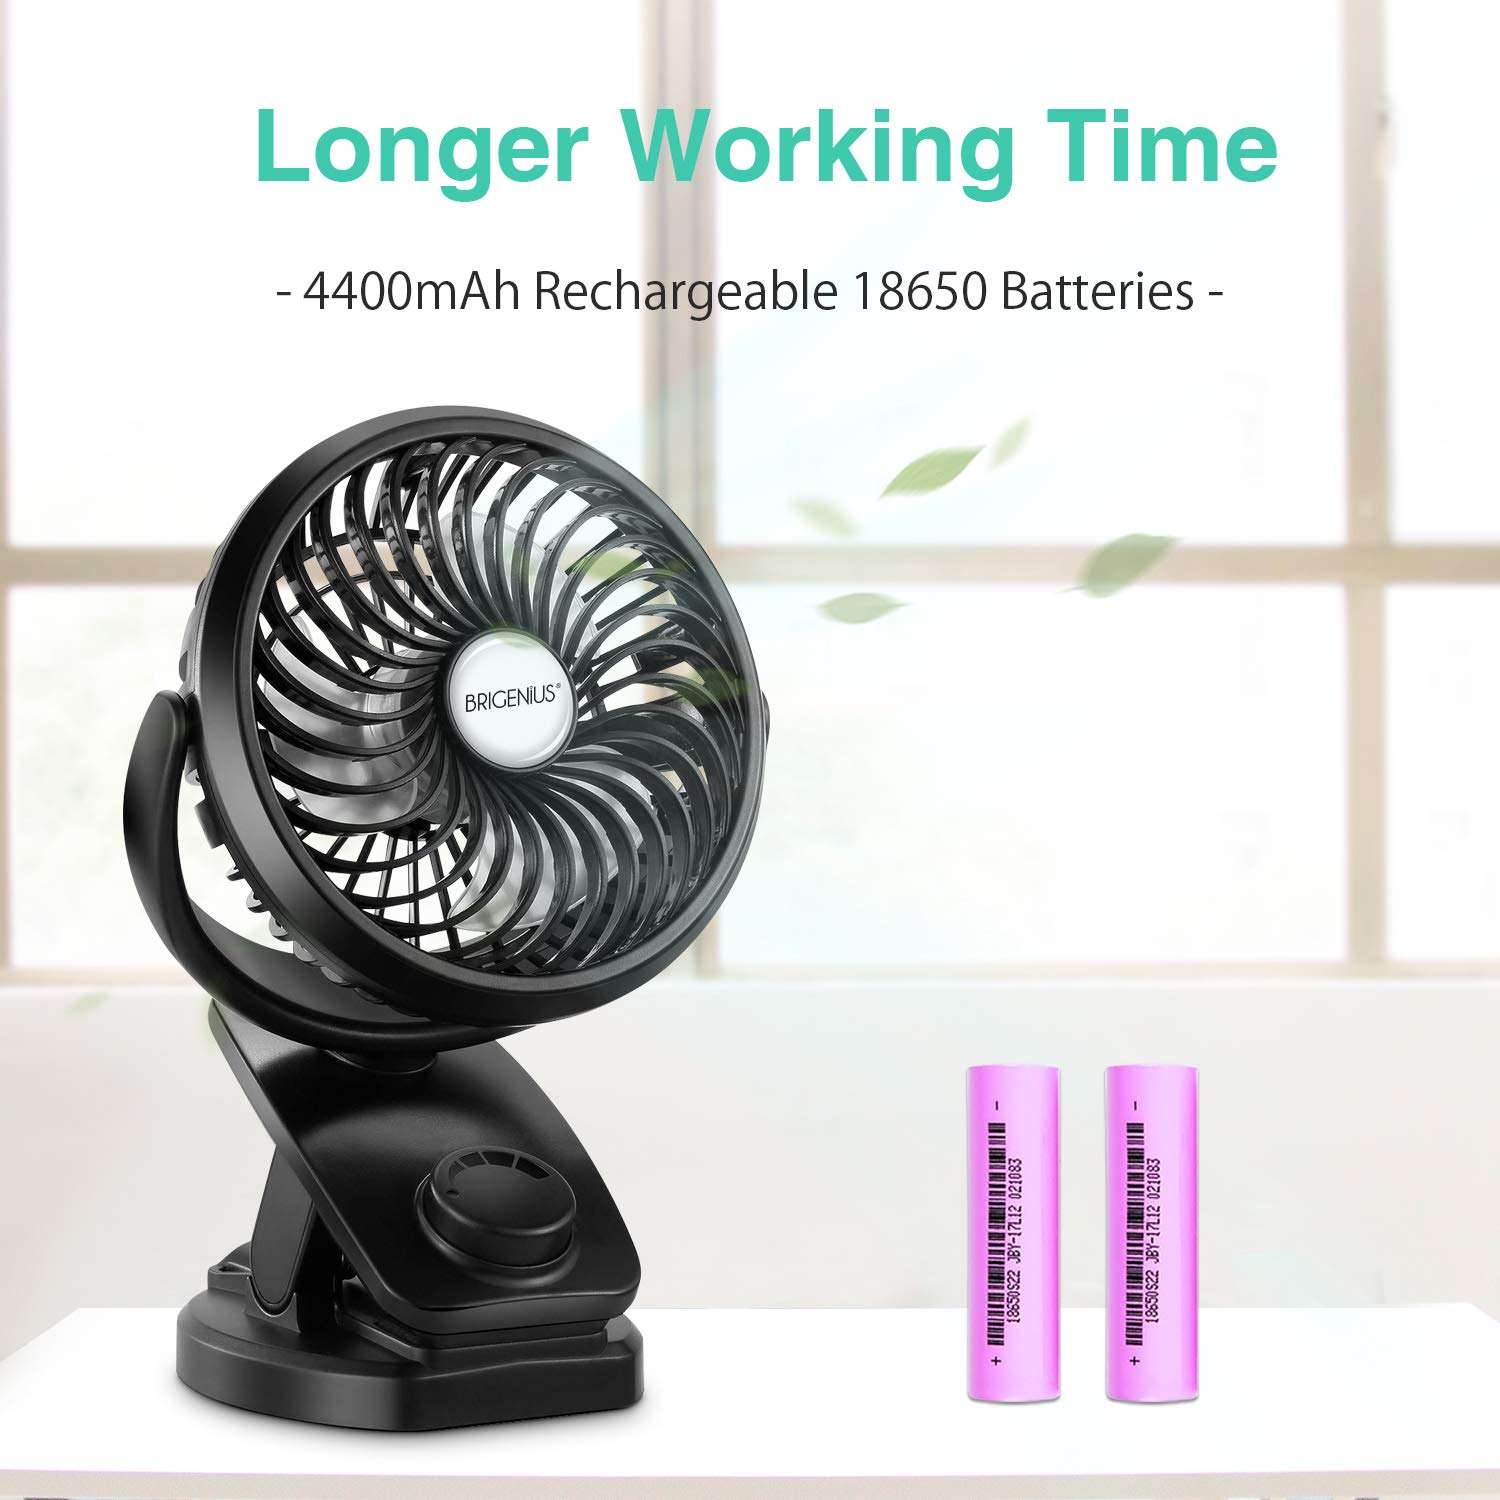 Battery Operated Clip on Stroller Fan - Portable Mini Desk Fan with Rechargeable 4400mAh Battery&USB Cable, USB Powered Clip Fan for Baby Stroller Office Outdoor Travel by BRIGENIUS (Image #2)